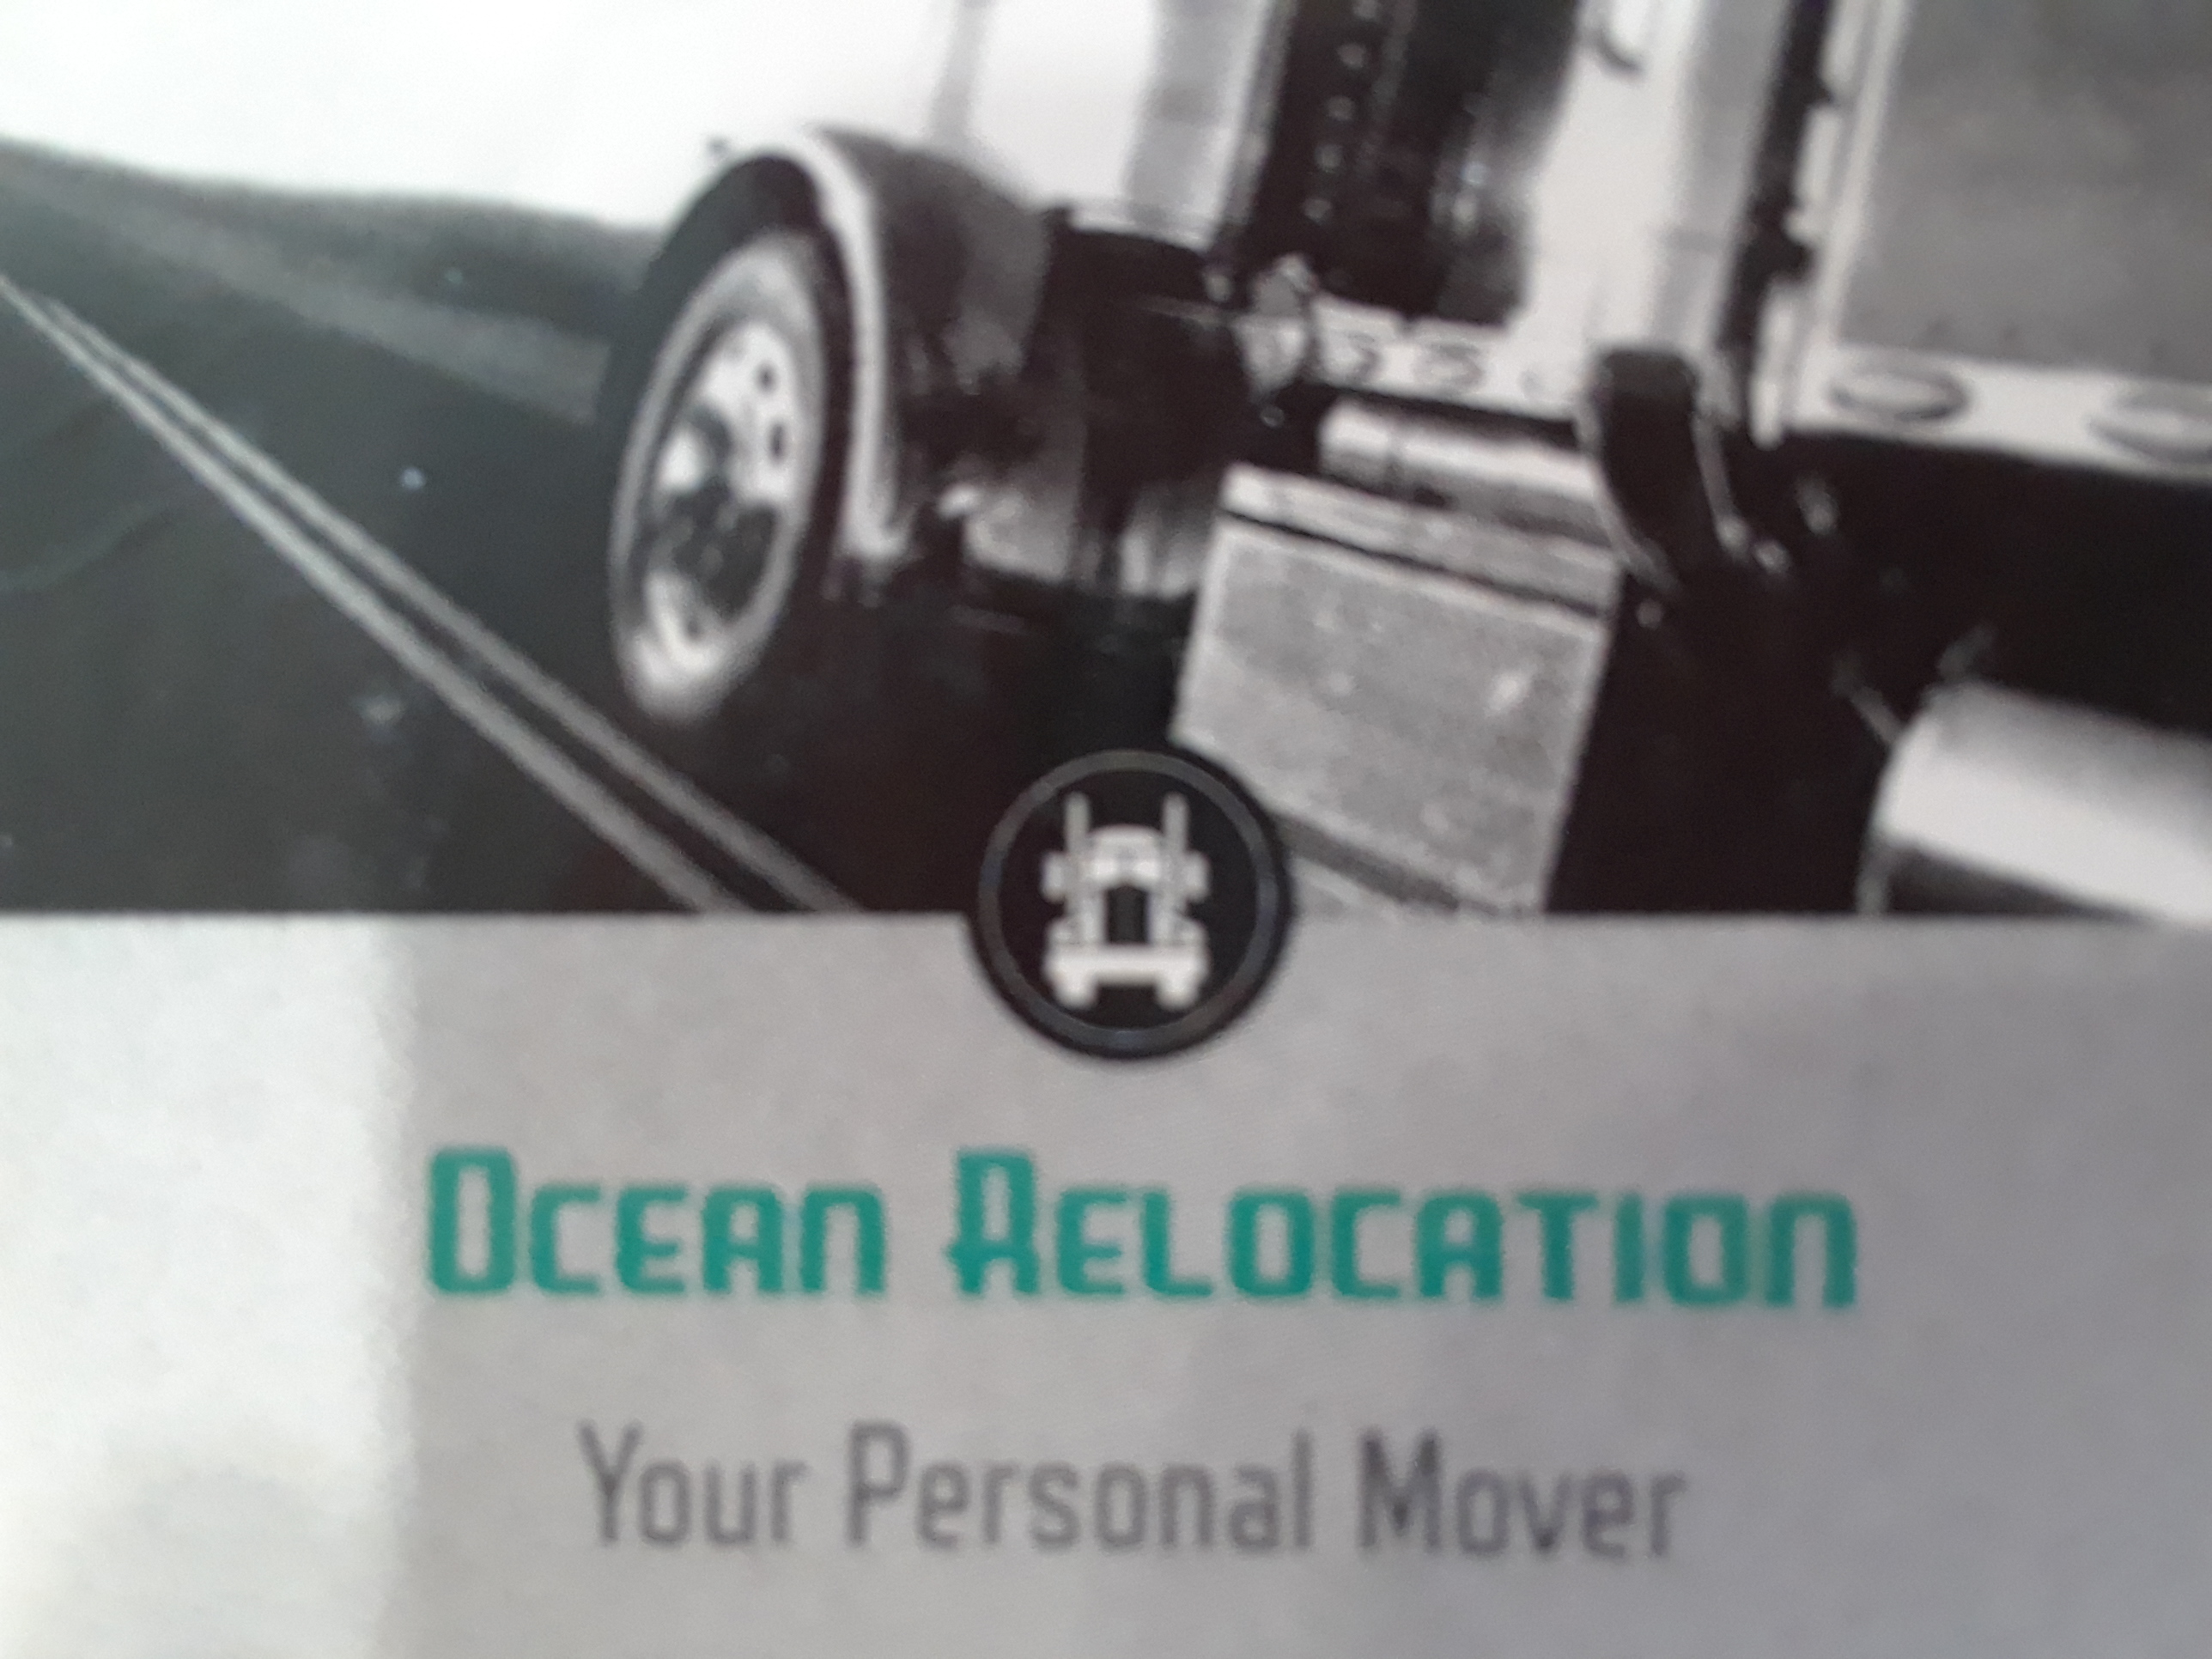 OCEAN relocation